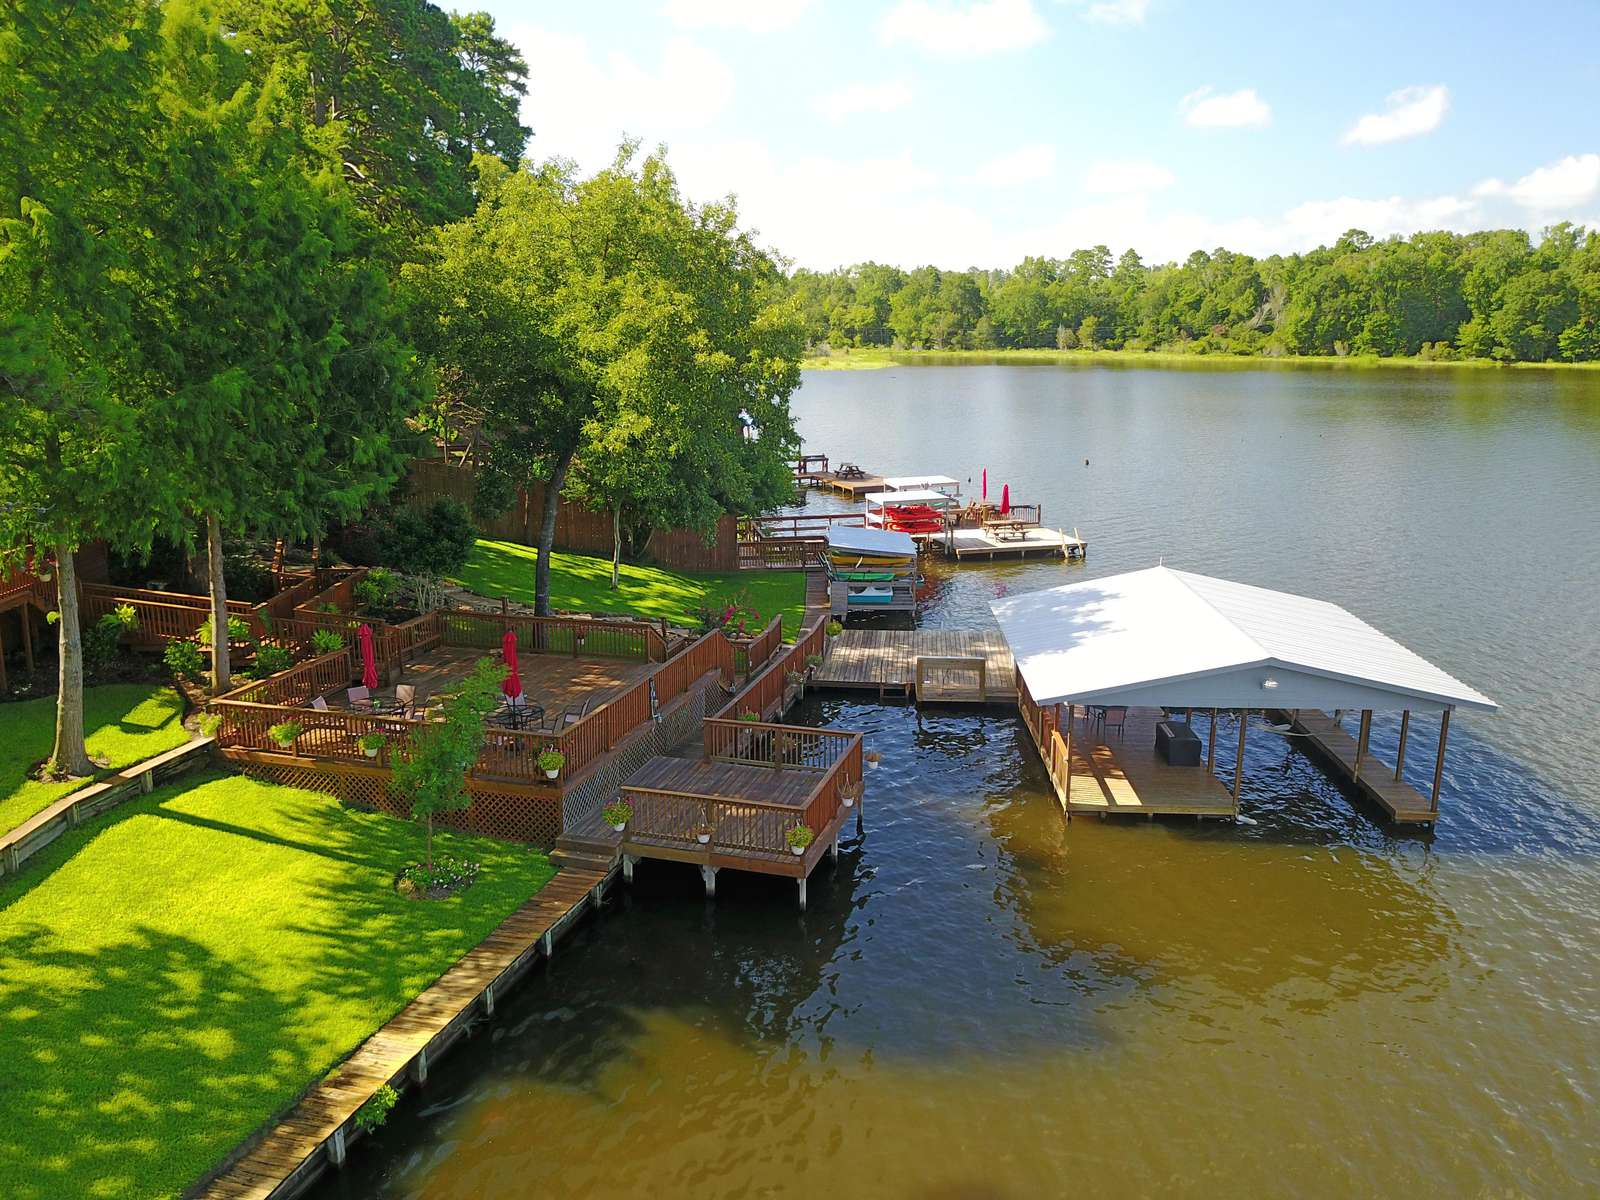 The lower porch (with firepit) and boat dock as viewed from our drone.